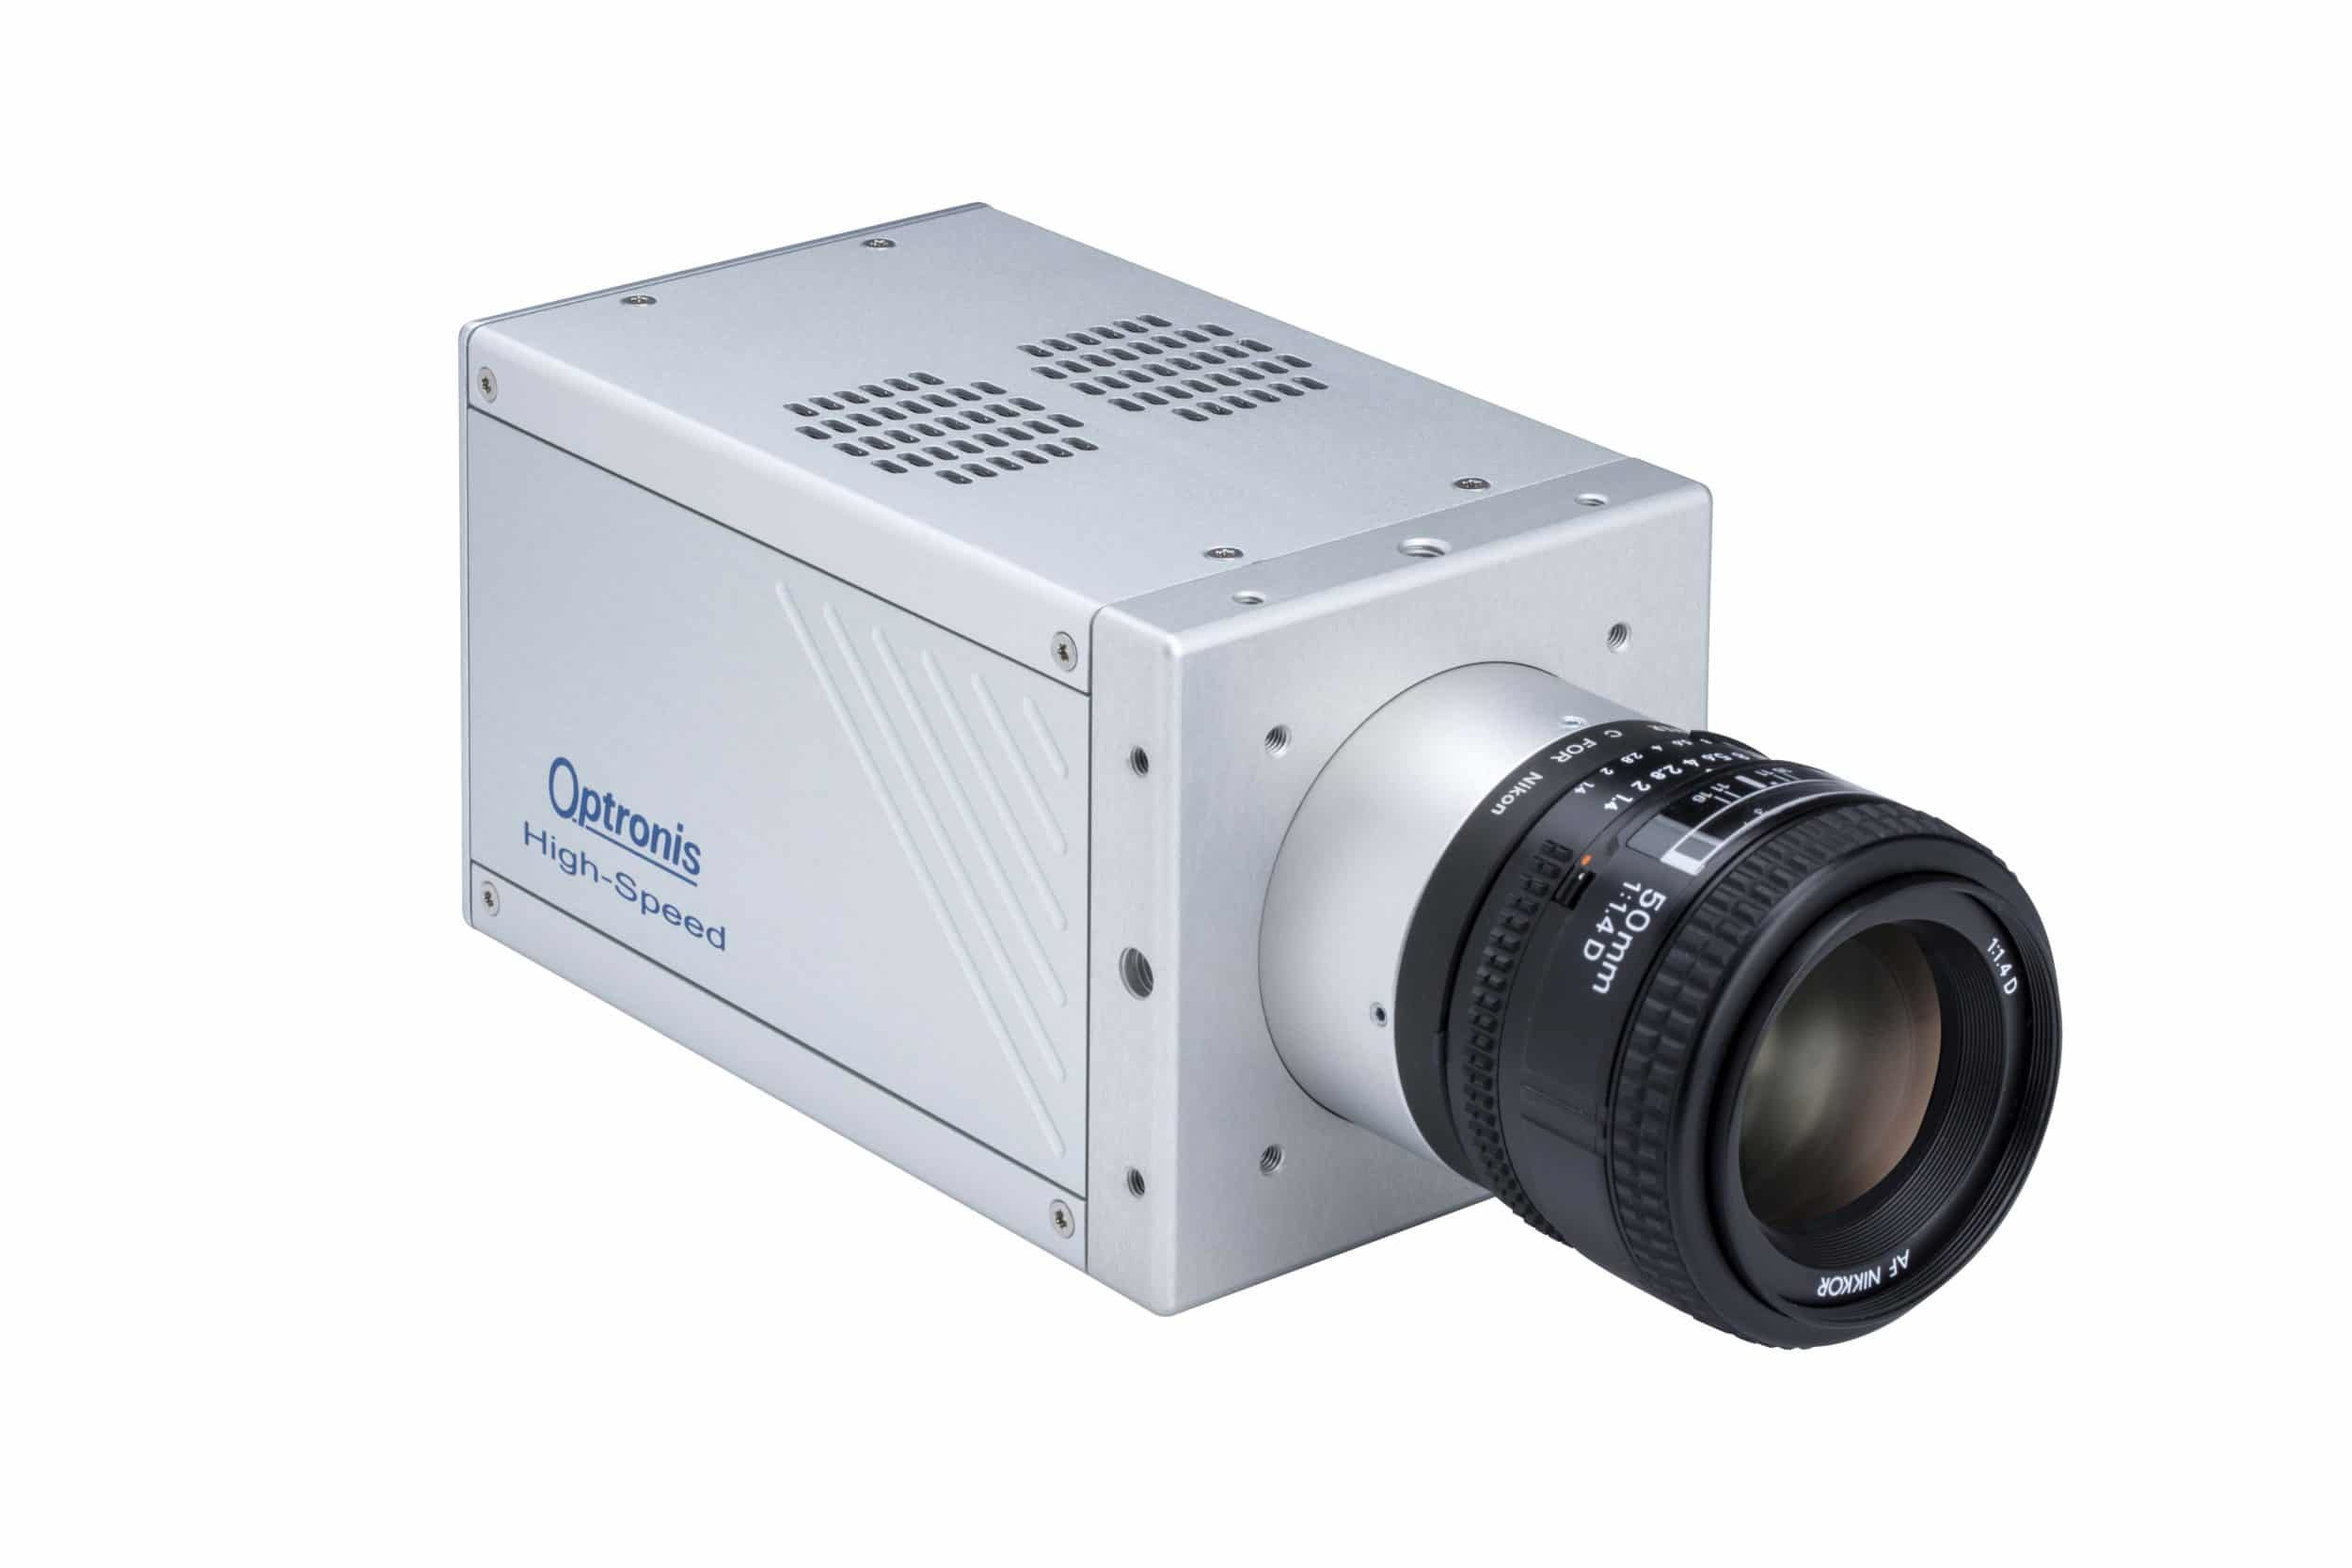 optronis sprinter slow motion camera now with ssd backup high frame rates combined with high resolution increase image data rates massively in